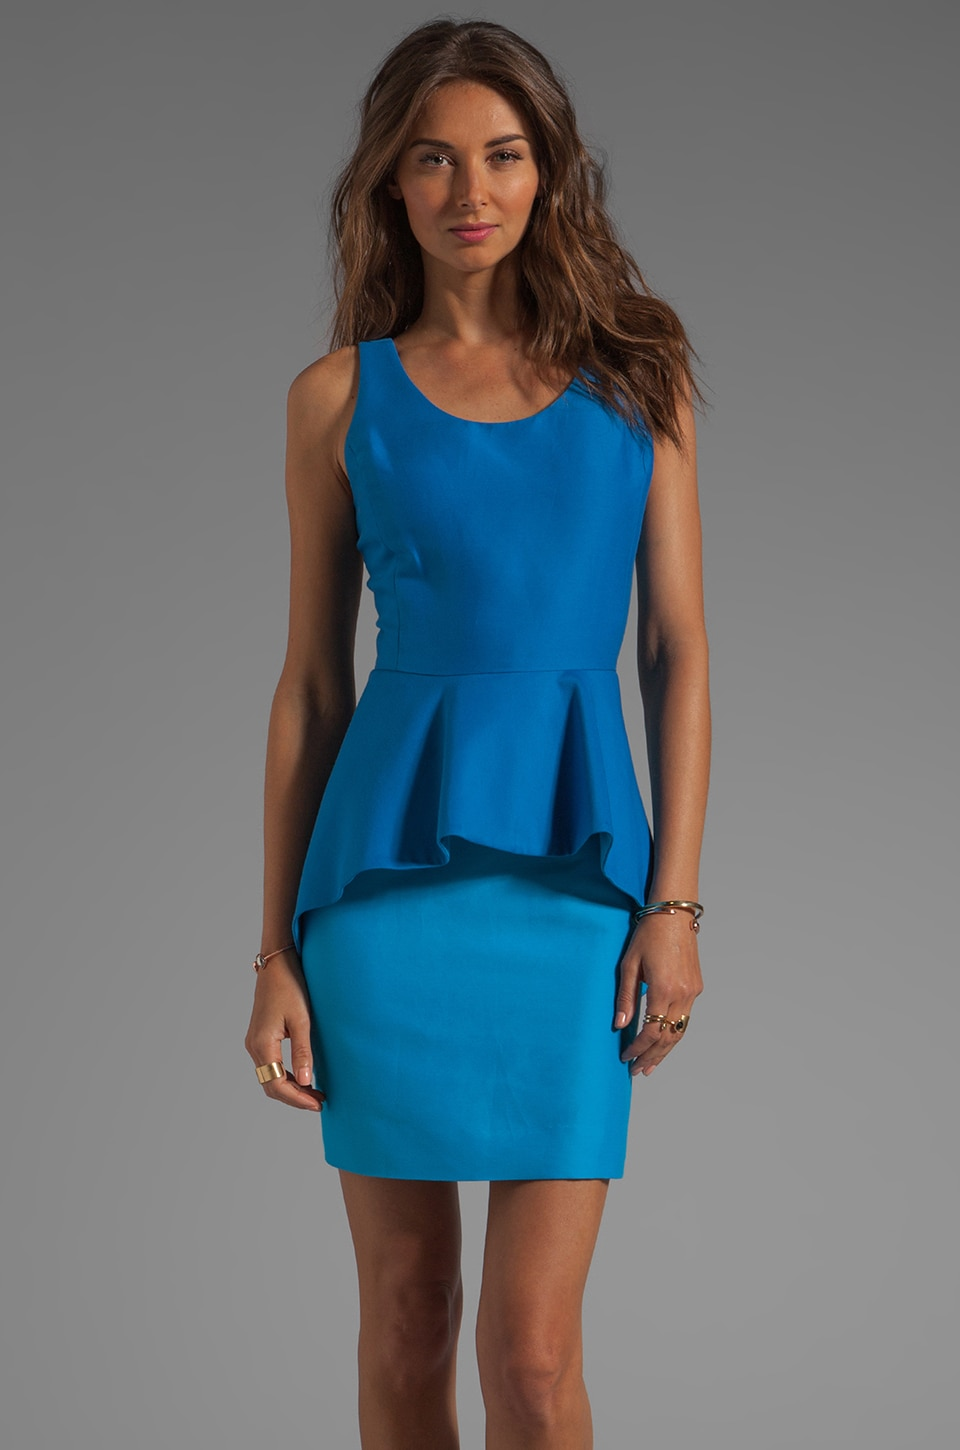 Halston Heritage Colorblock Peplum Sheath Dress in Aquamarine/Lagoon